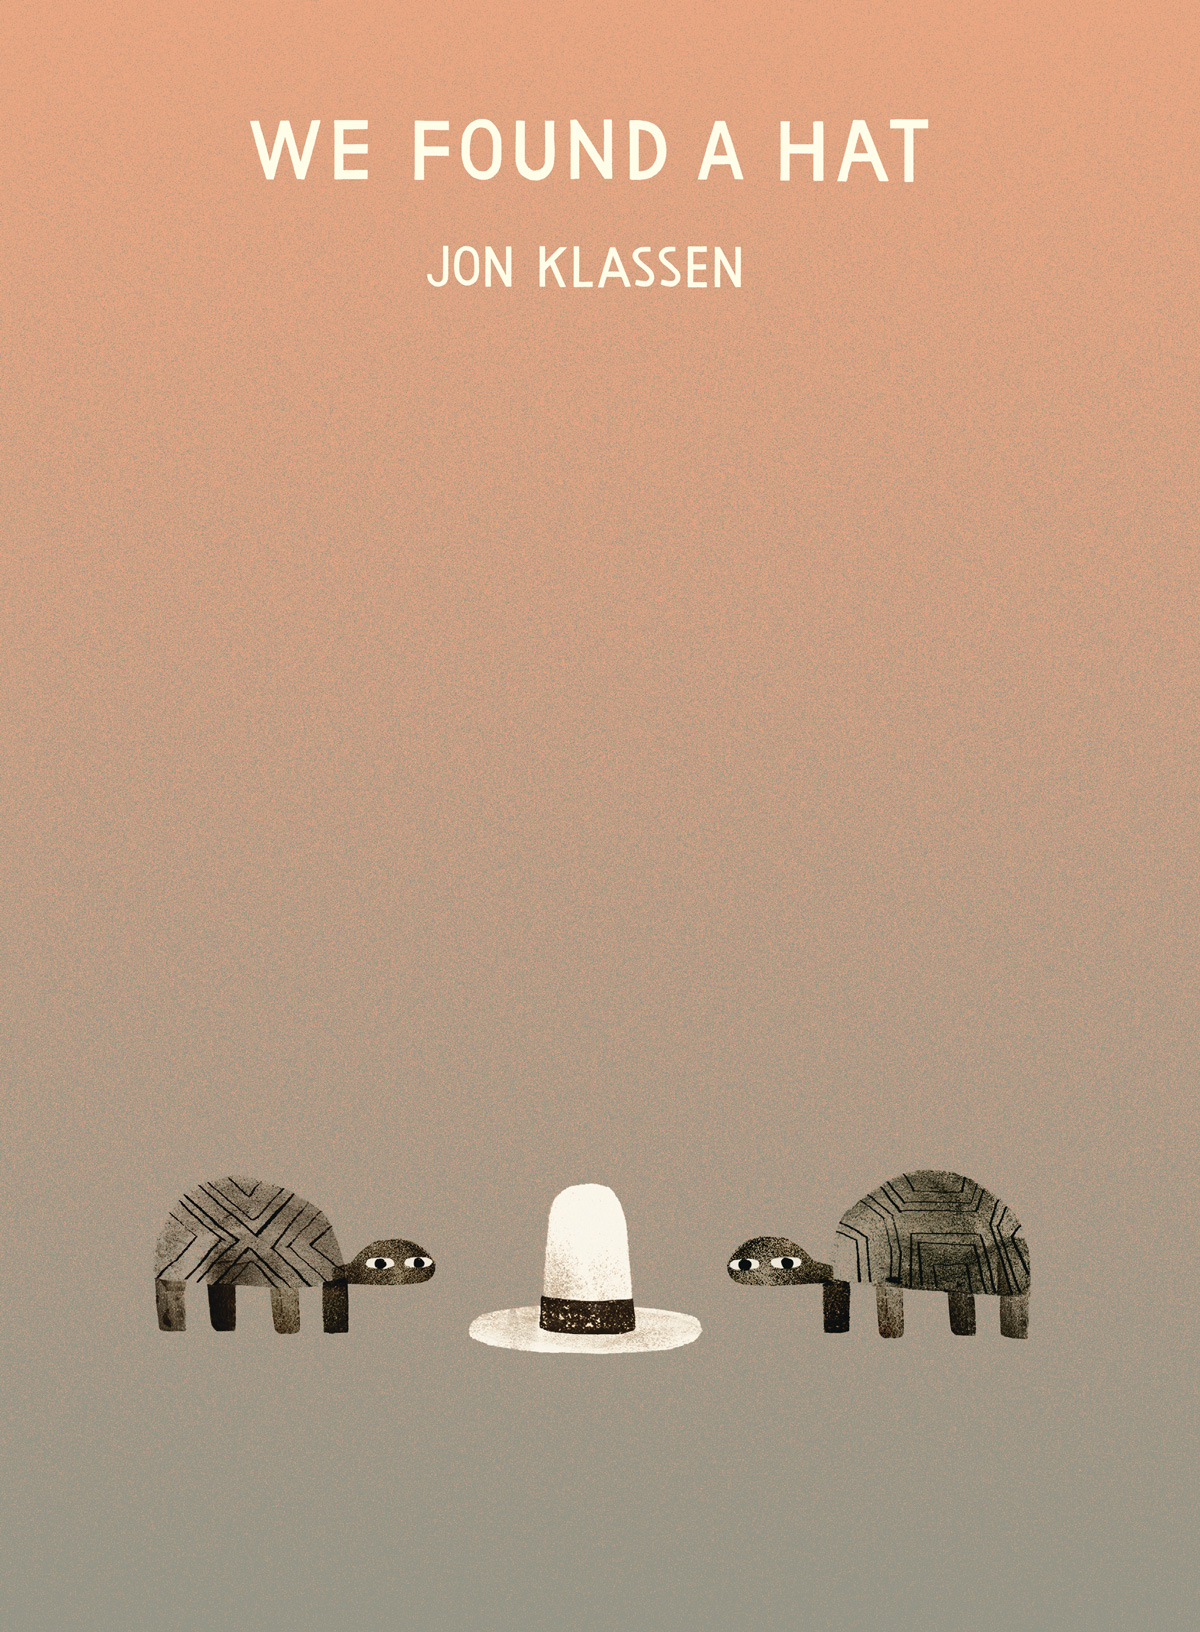 We Found a Hat: Jon Klassen's Minimalist, Maximally Wonderful Parable of Transforming Covetousness into Generosity and Justice